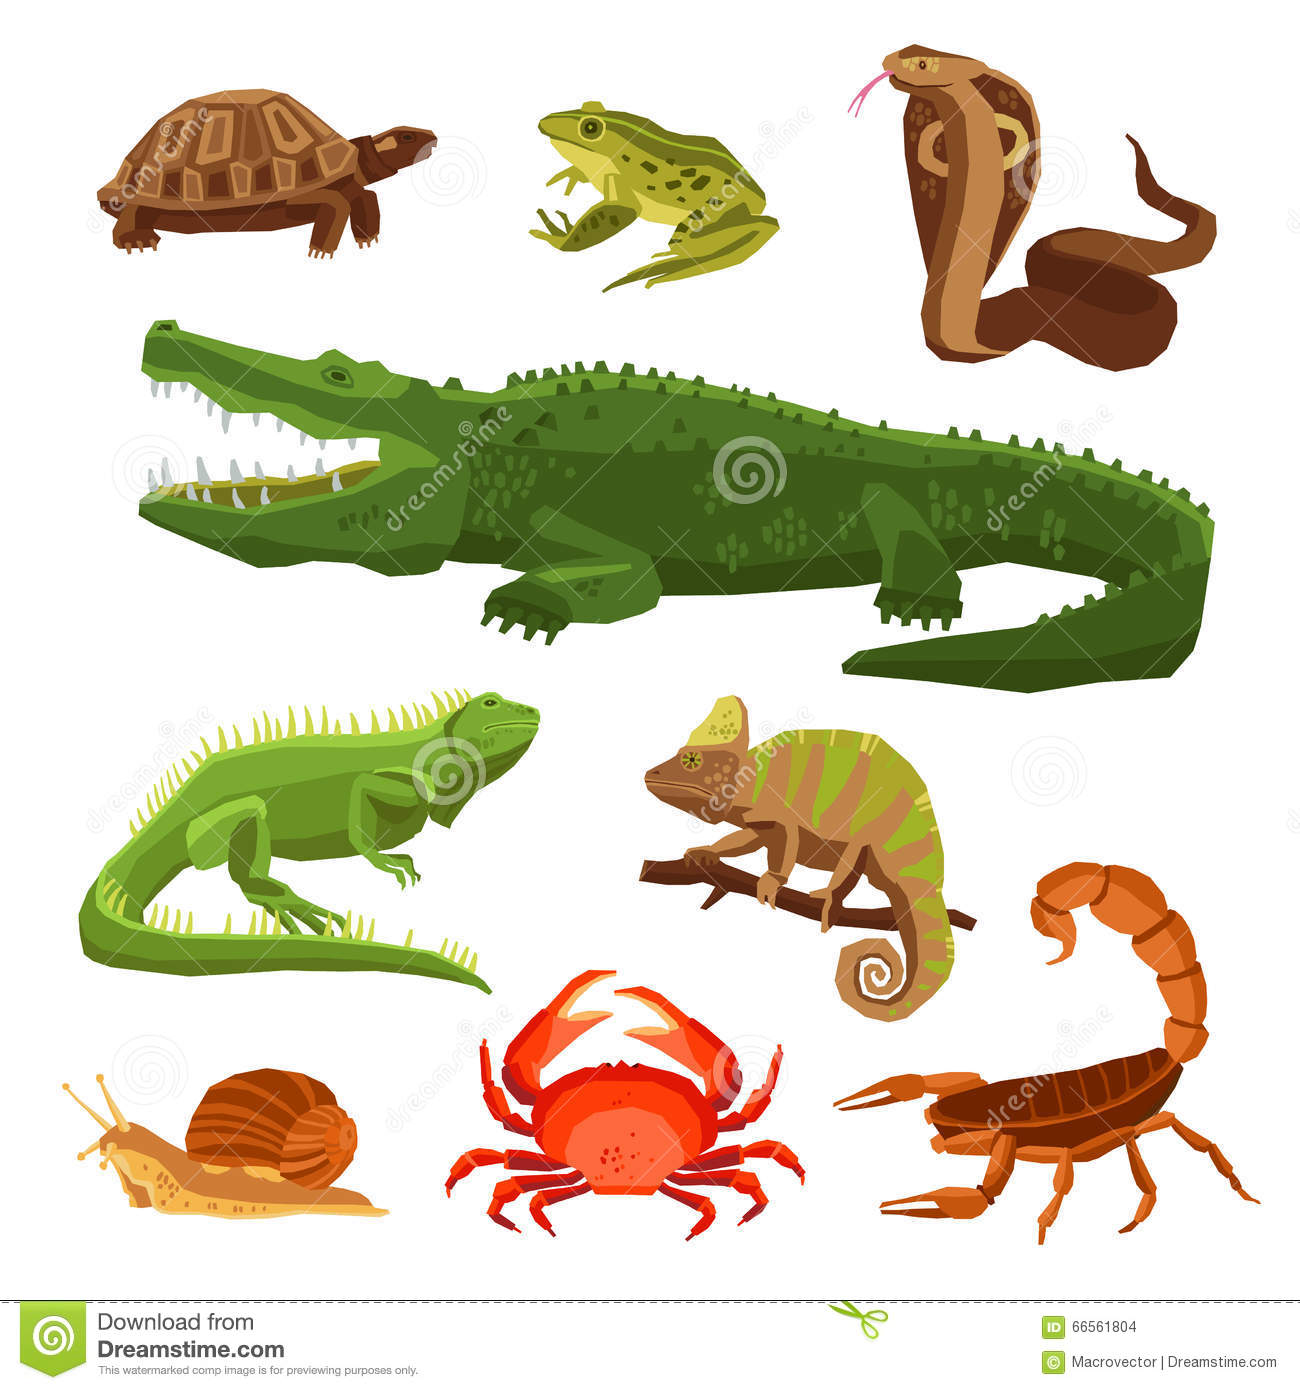 Reptiles And Amphibians Set Stock Vector Image 66561804